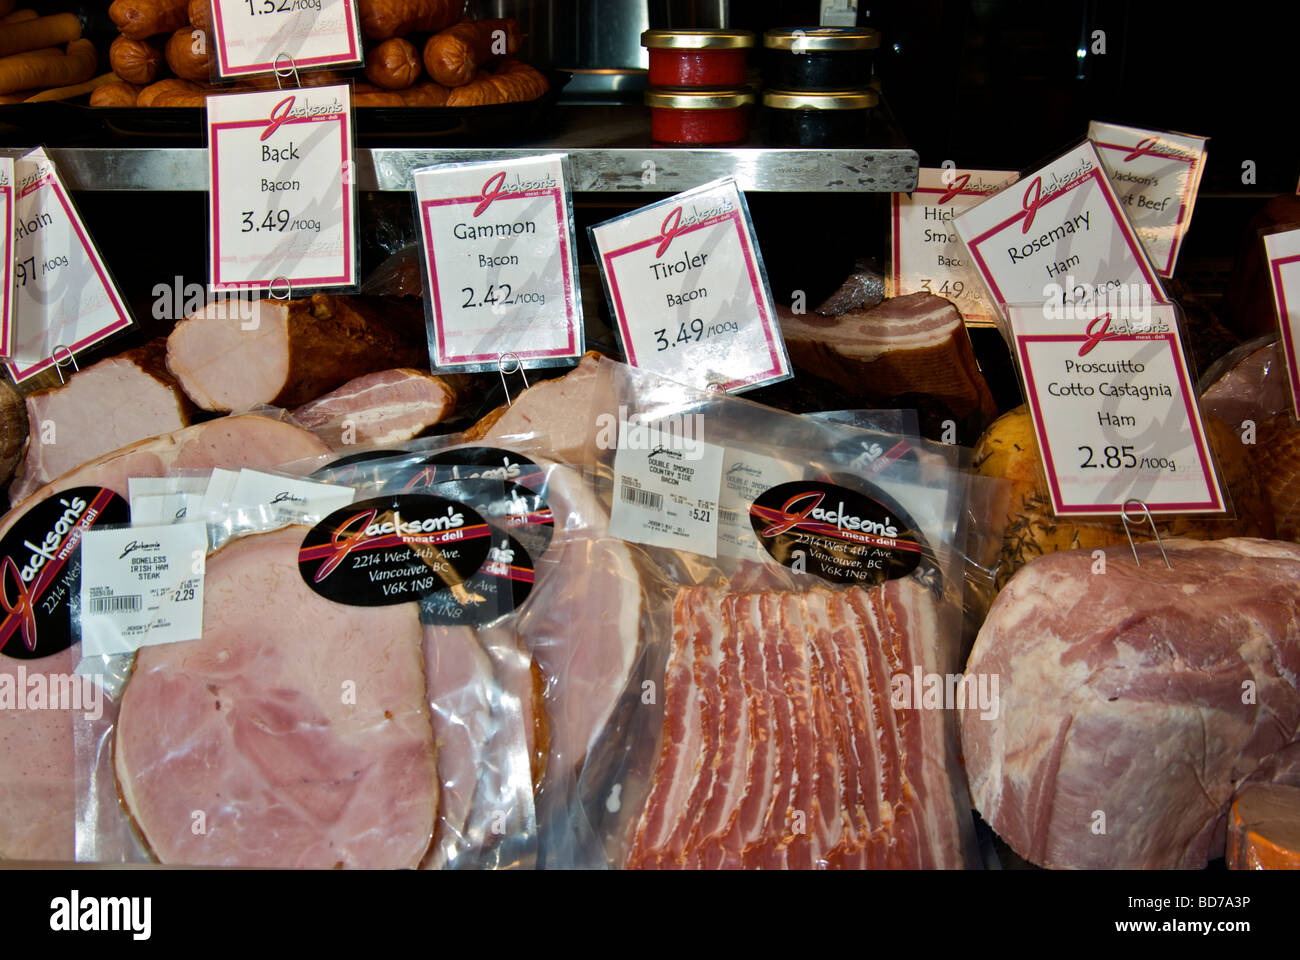 Delicatessen specialty cured meats hams bacon sausage - Stock Image